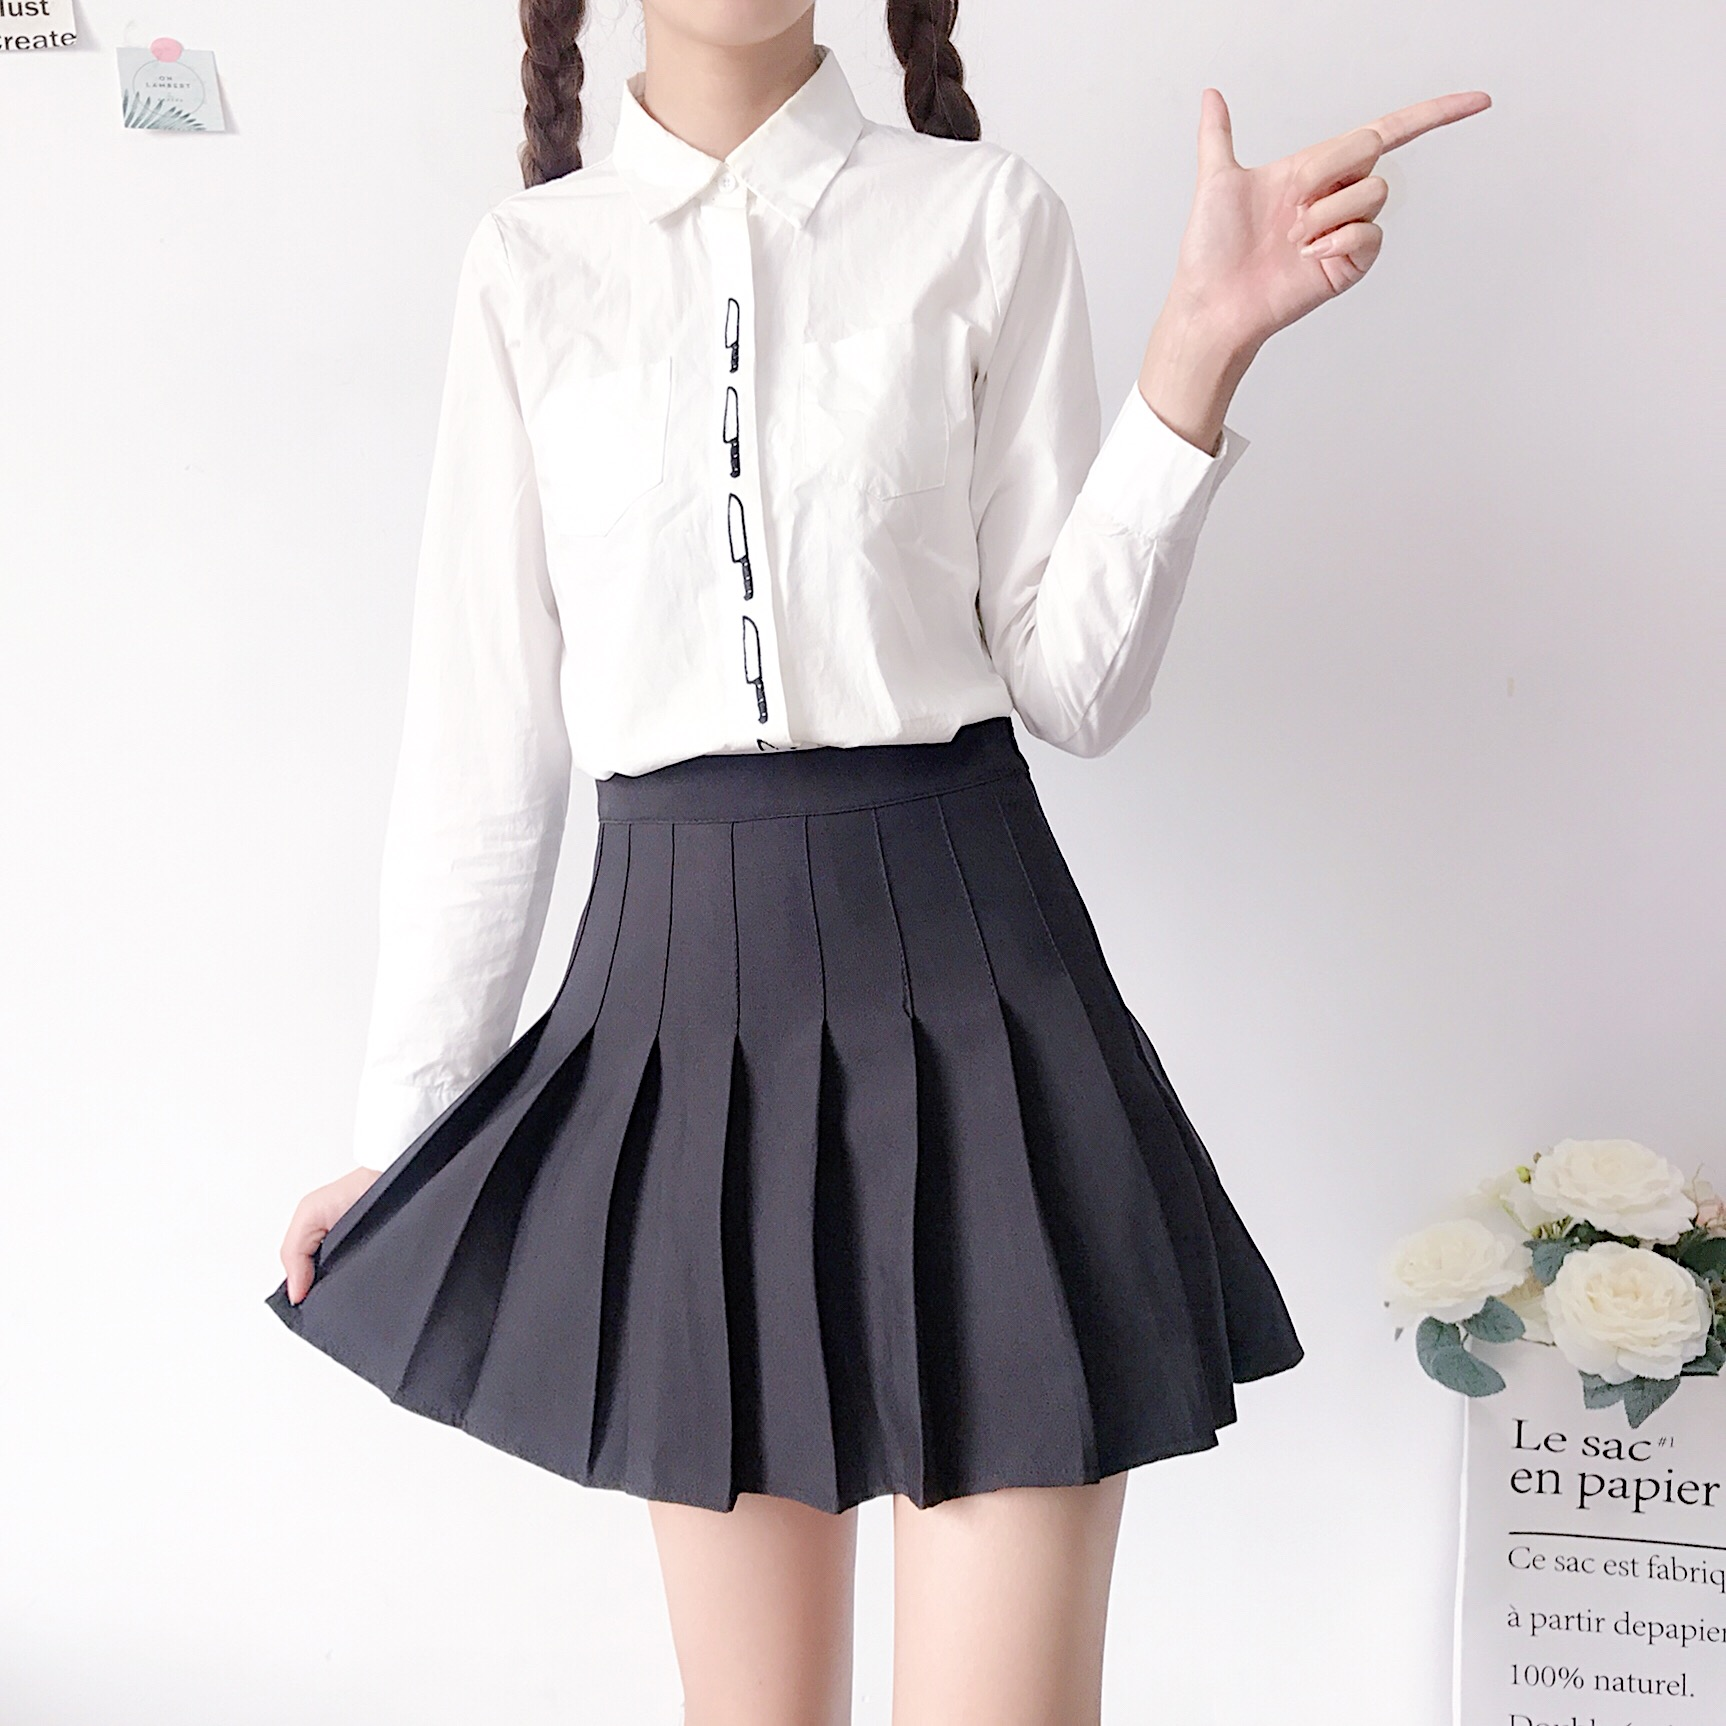 XS-3XL Women Skirt Preppy Style High Waist Chic Stitching Skirts Summer Student Pleated Skirt Women Cute Sweet Girls Dance Skirt 34